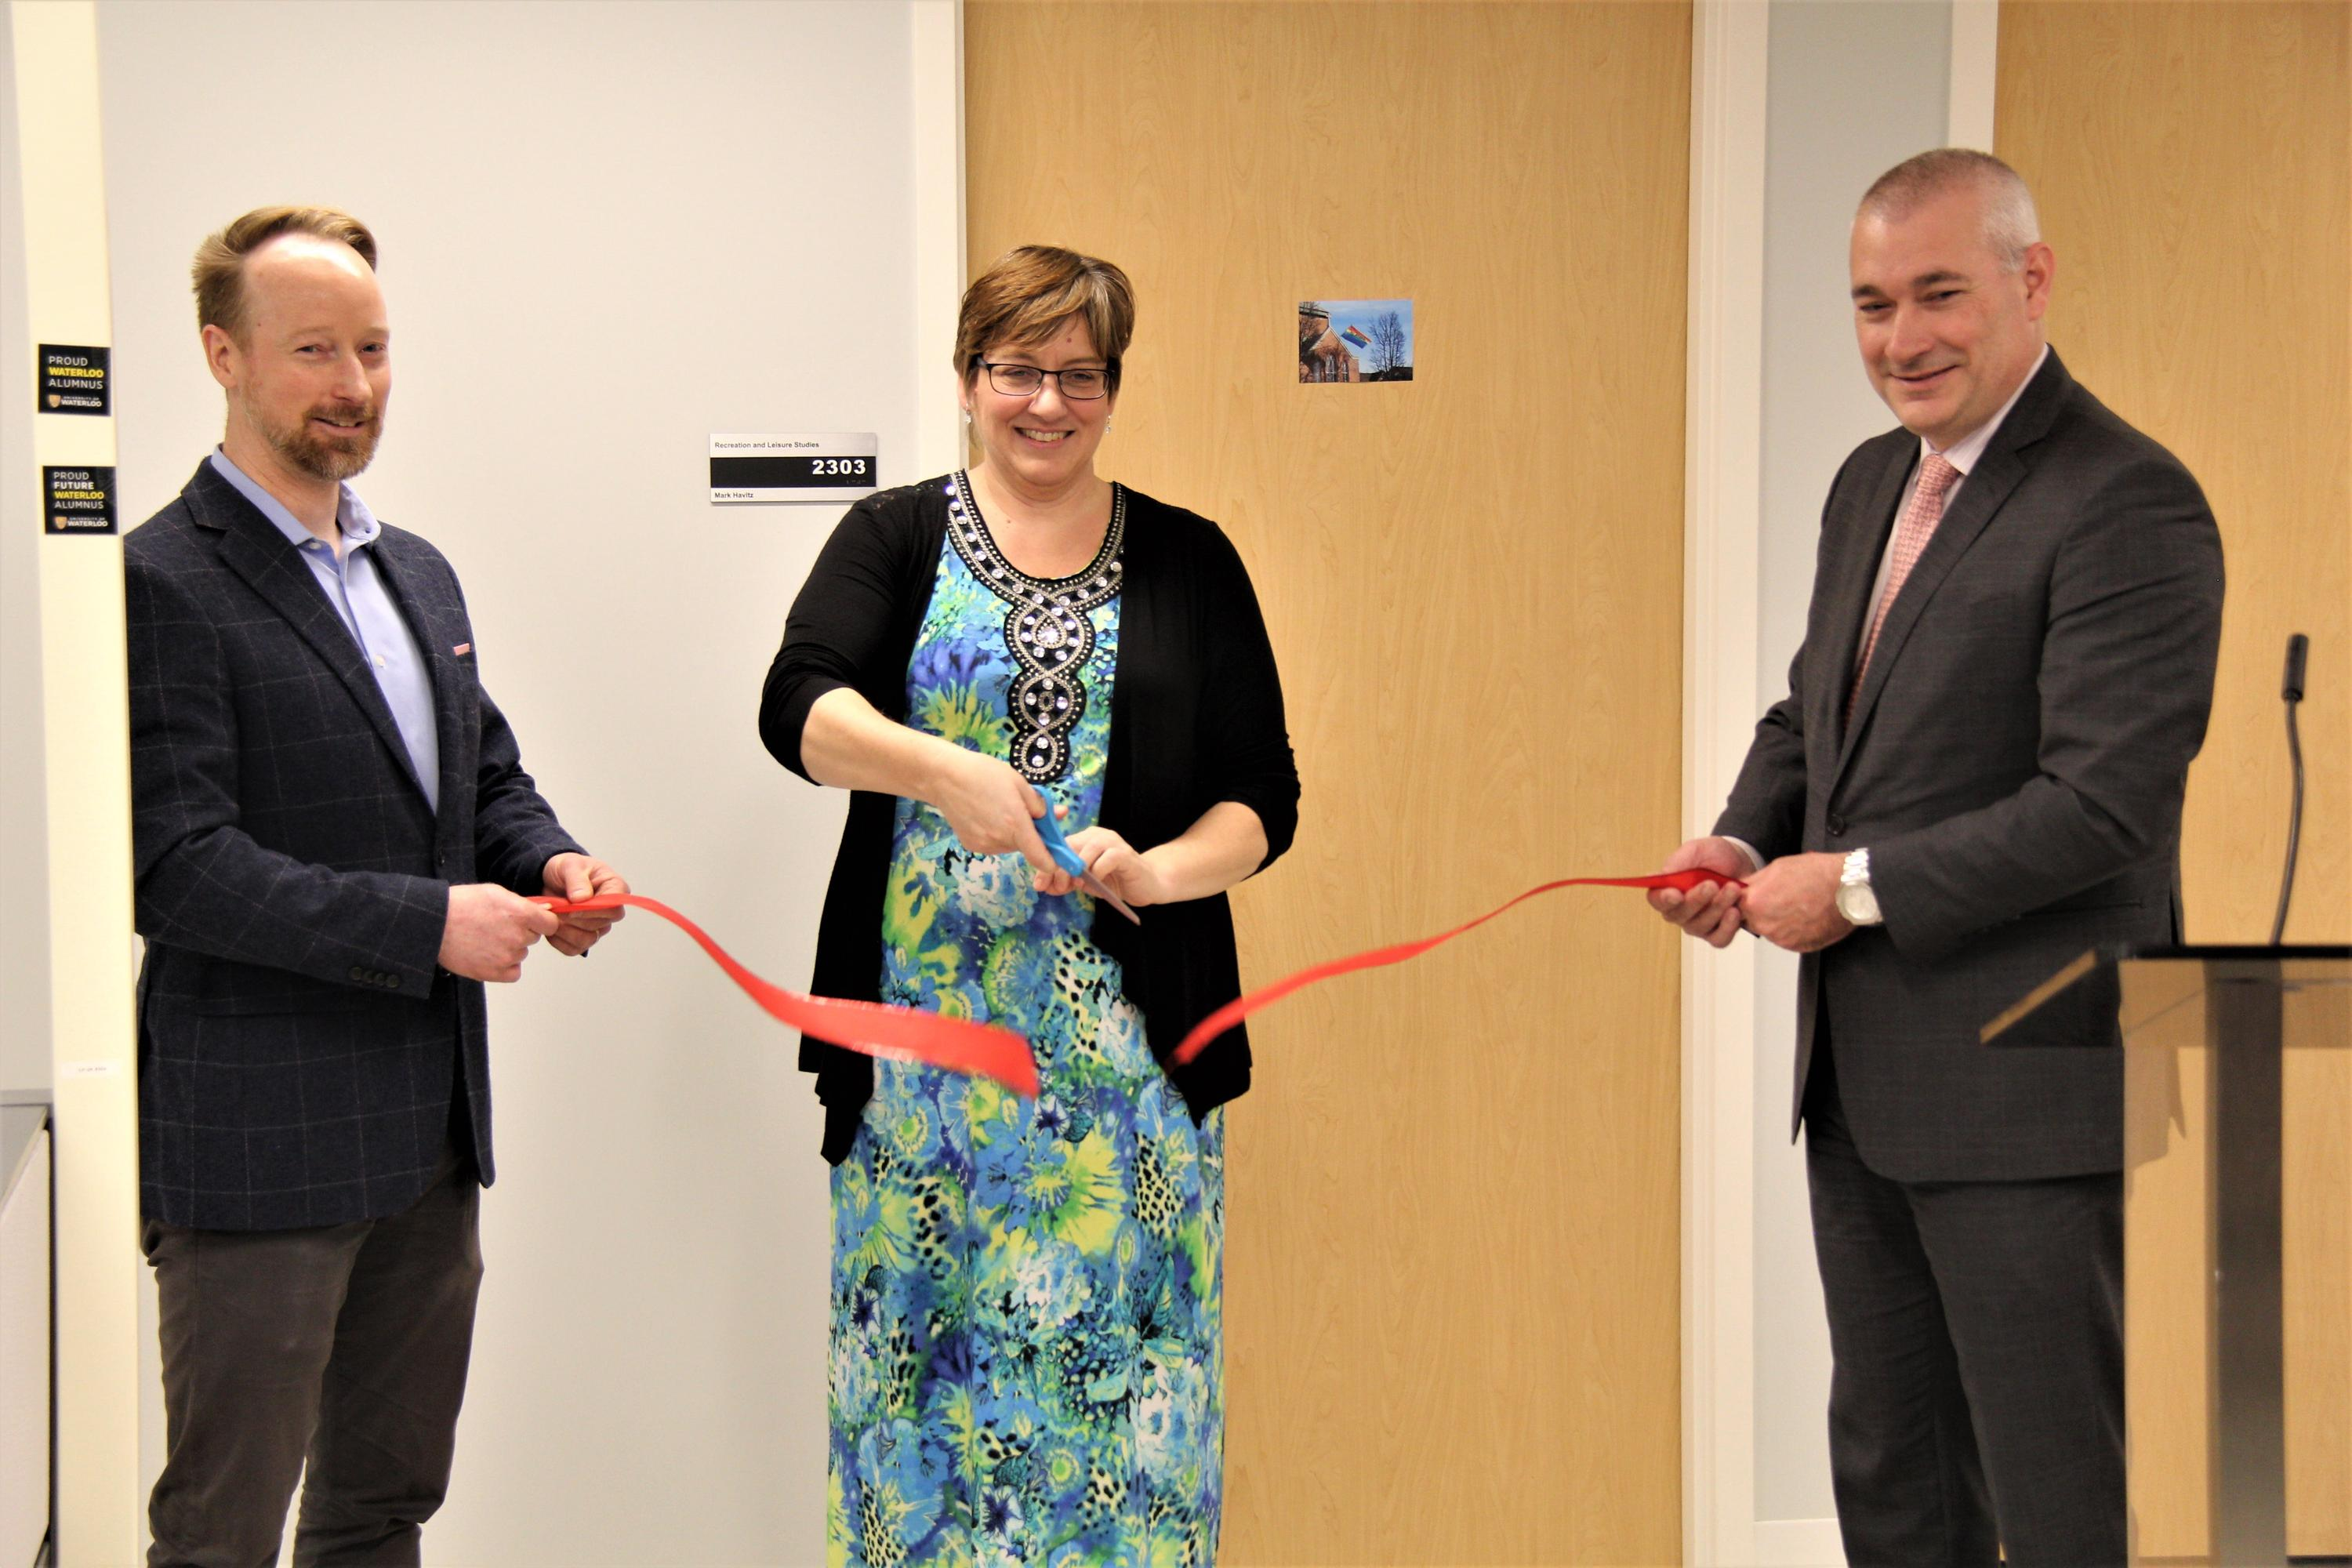 Dr. Troy Glover, Sandy Heise, and Dean James Rush cut the ceremonial ribbon